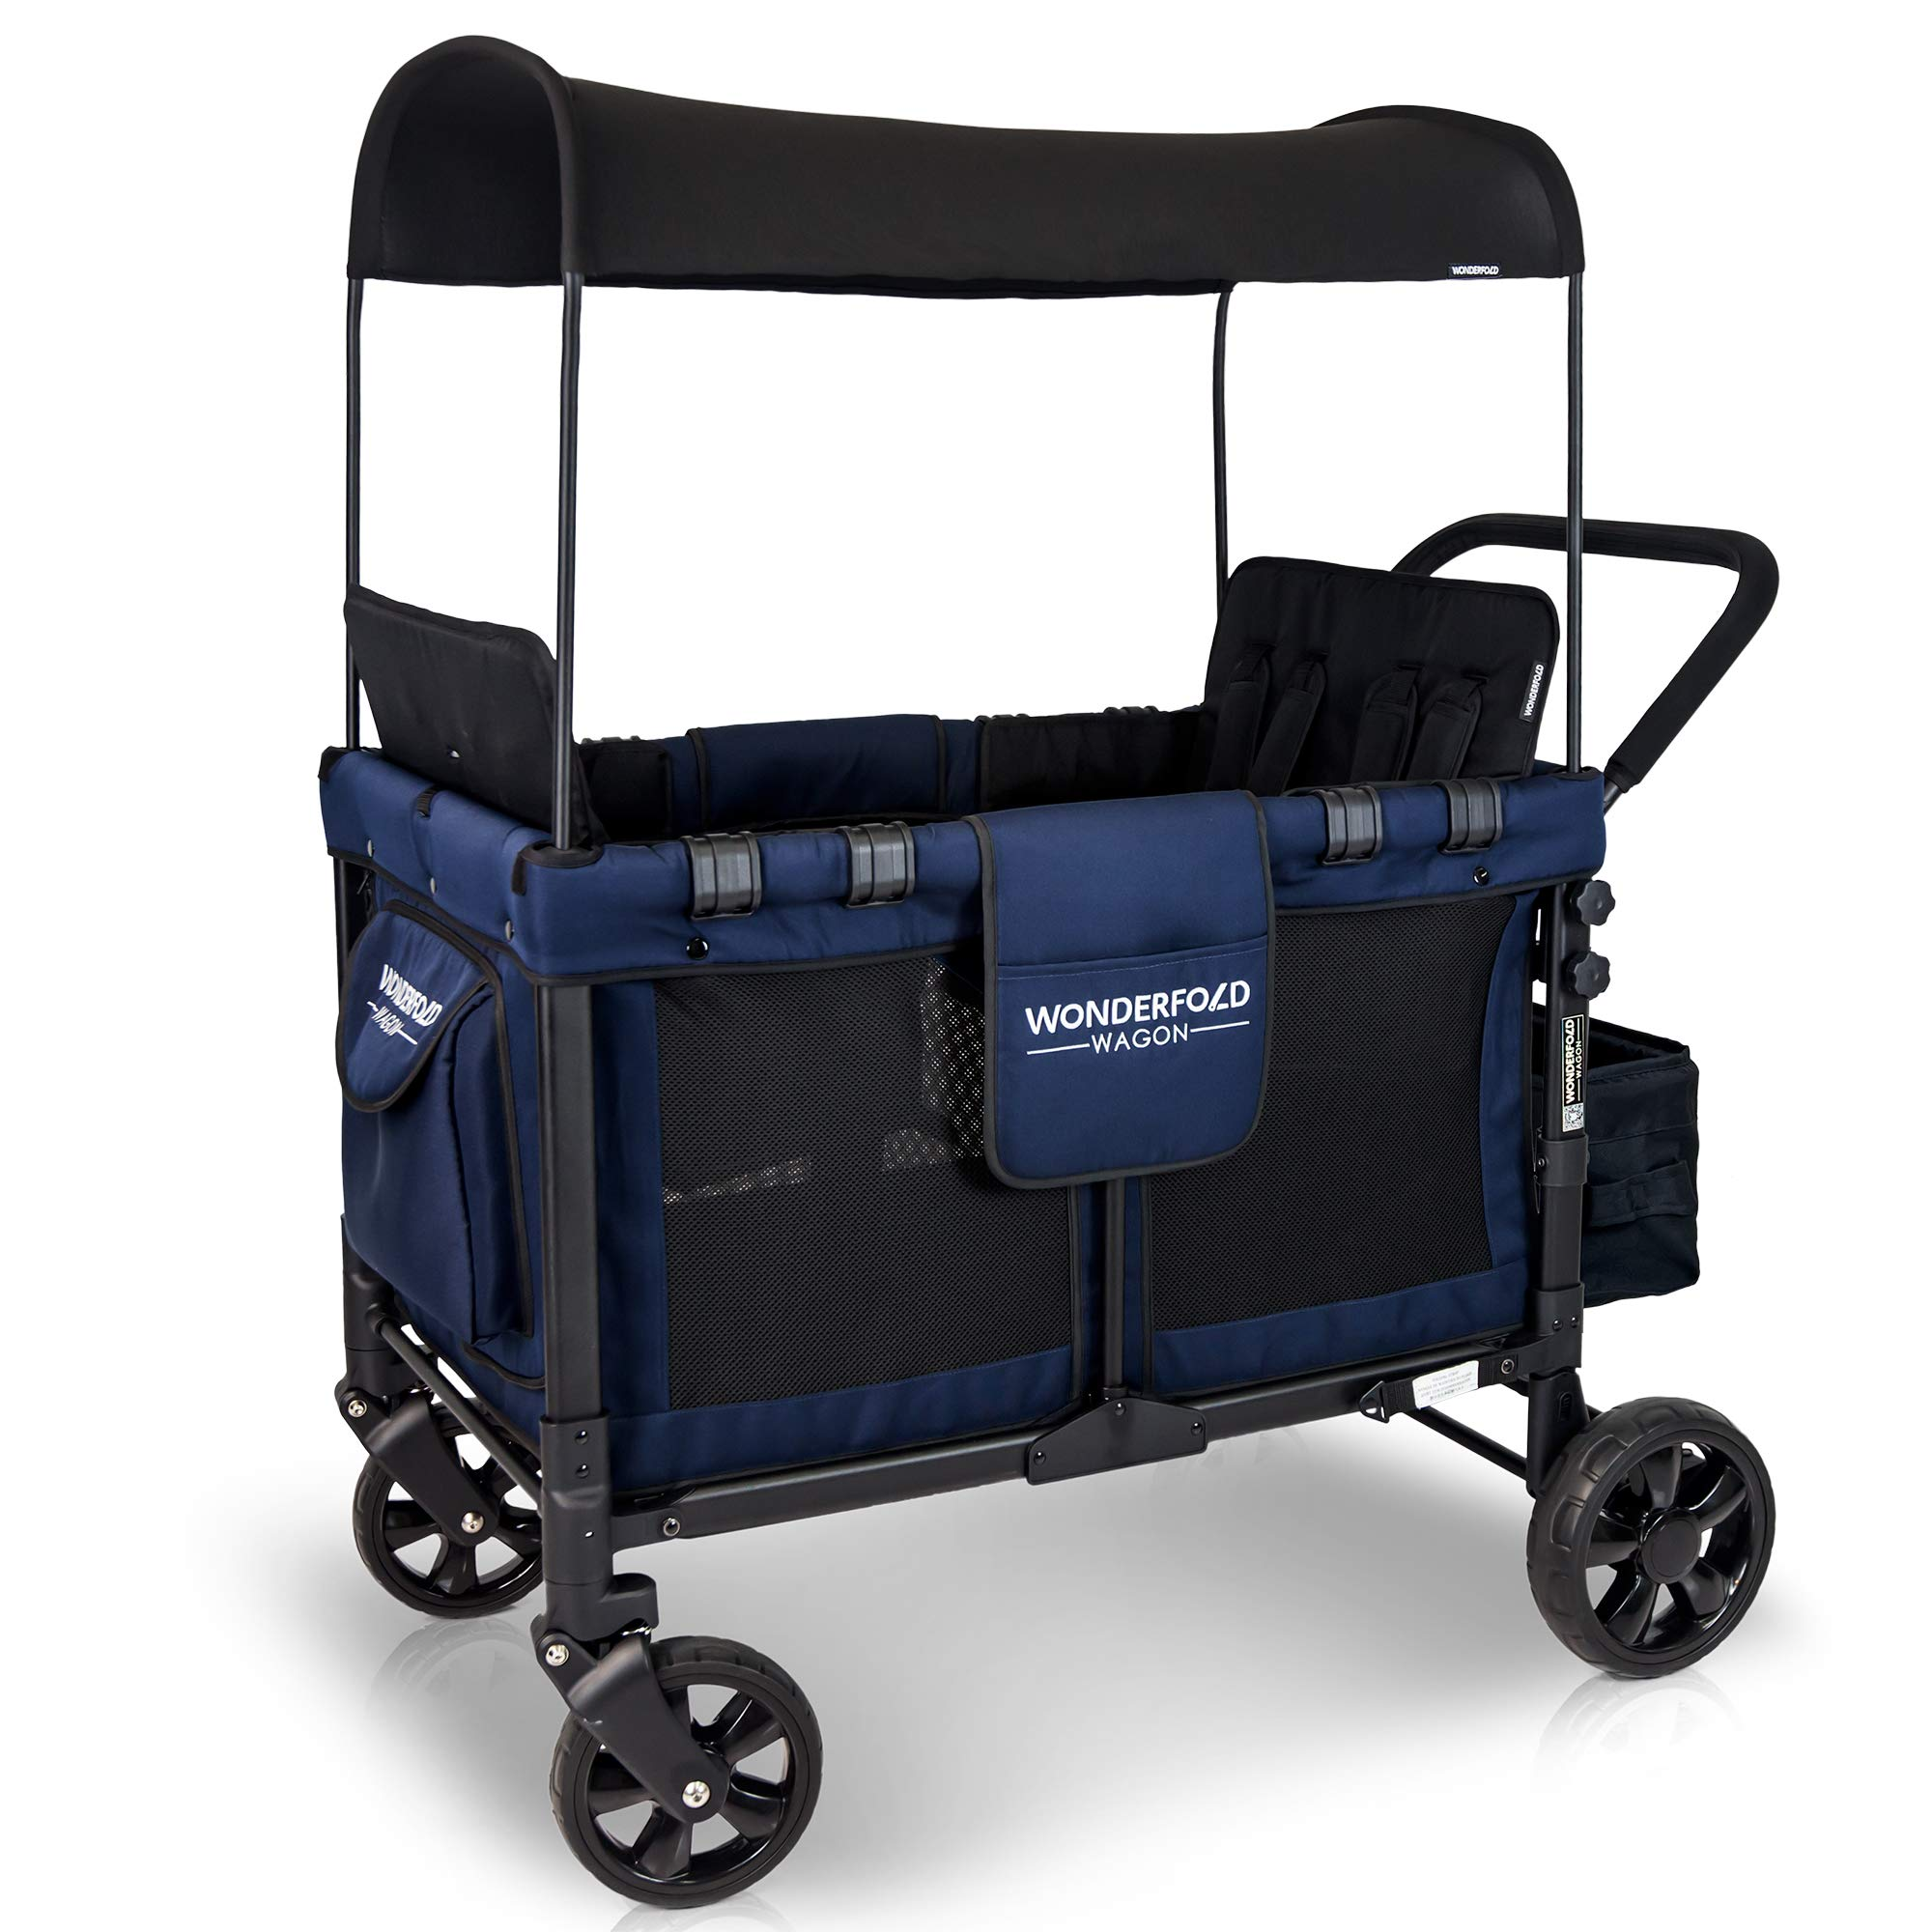 WONDERFOLD W4 4 Seater Multi-Function Quad Stroller Wagon with Removable Raised Seats and Slidable Canopy, Navy